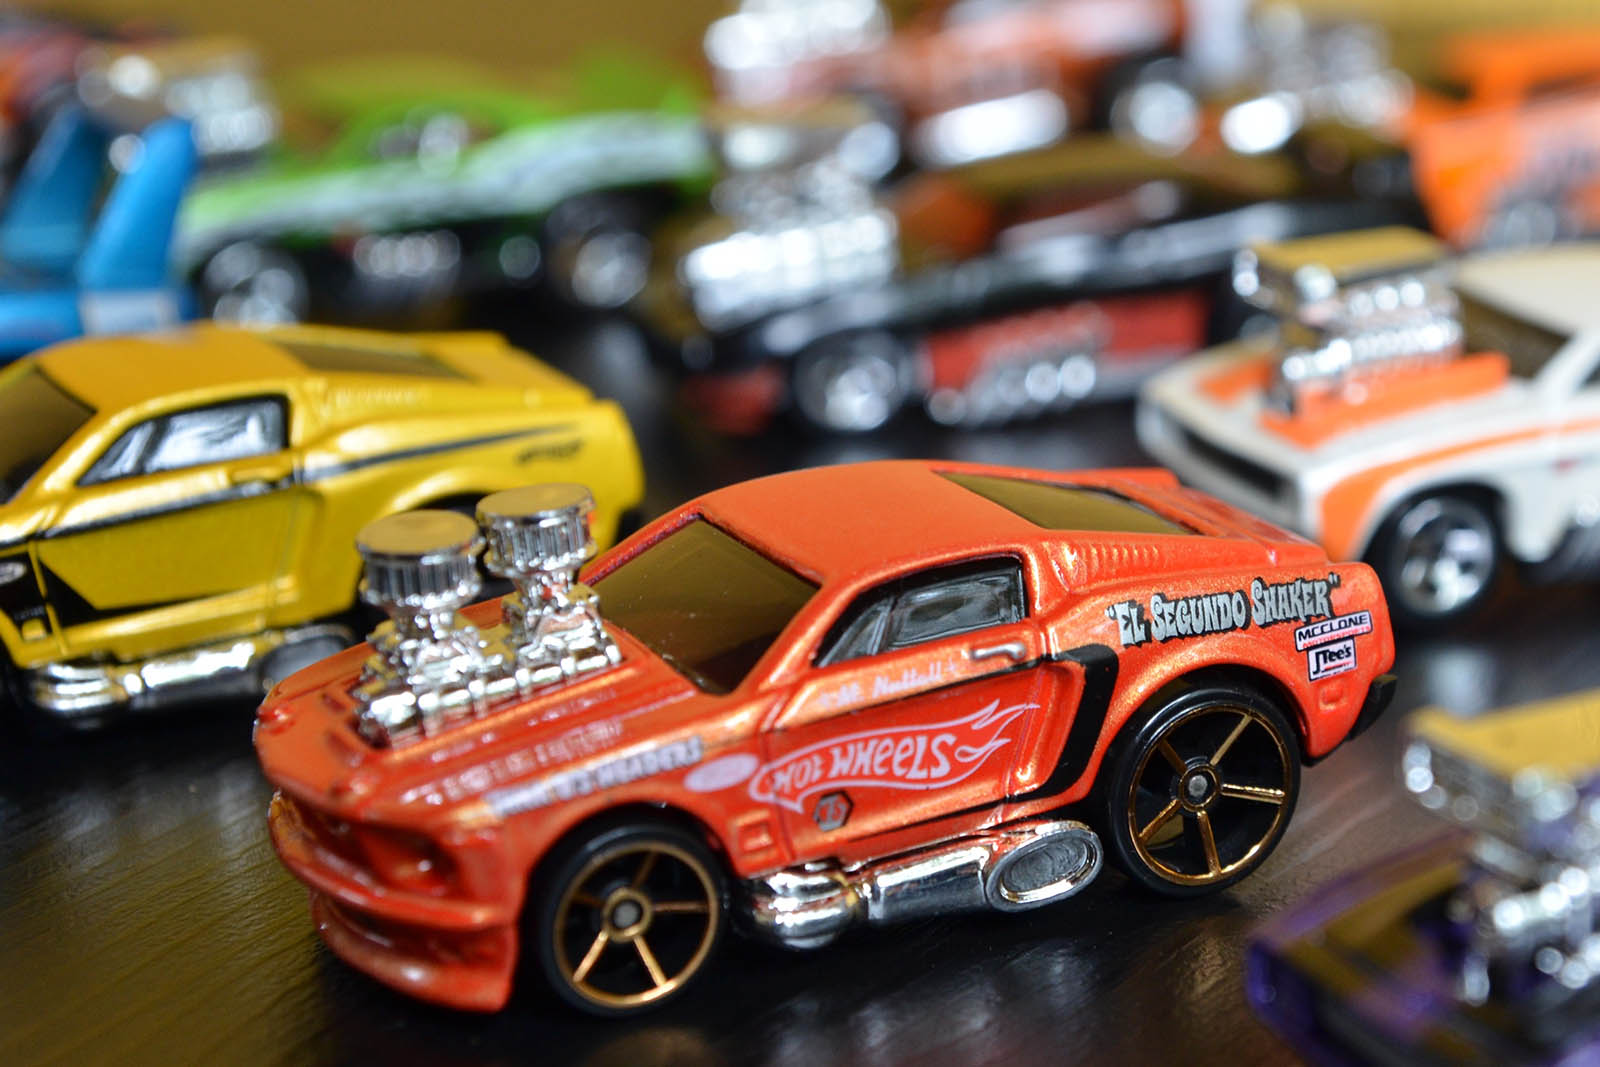 wheels cars toy collection background bokeh movie warner bros